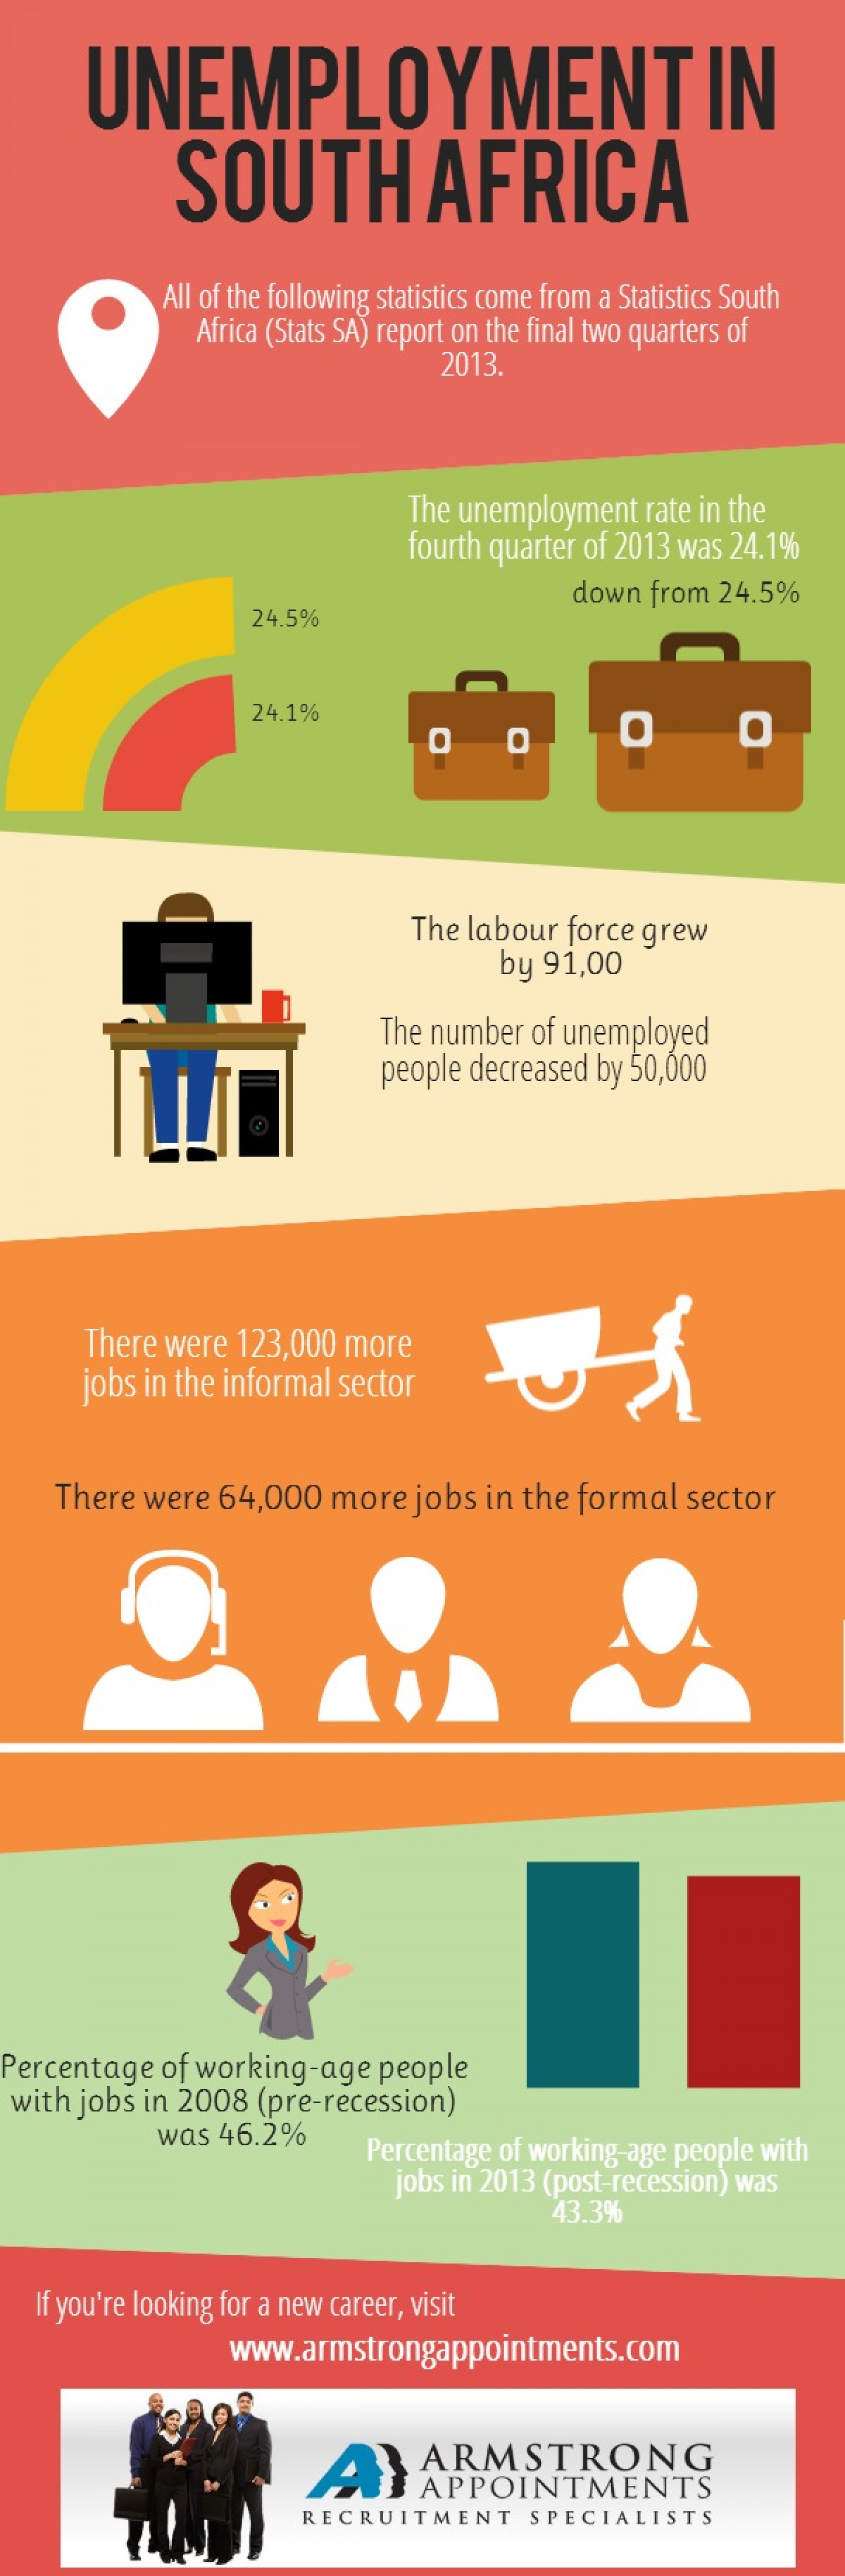 Unemployment in South Africa Infographic